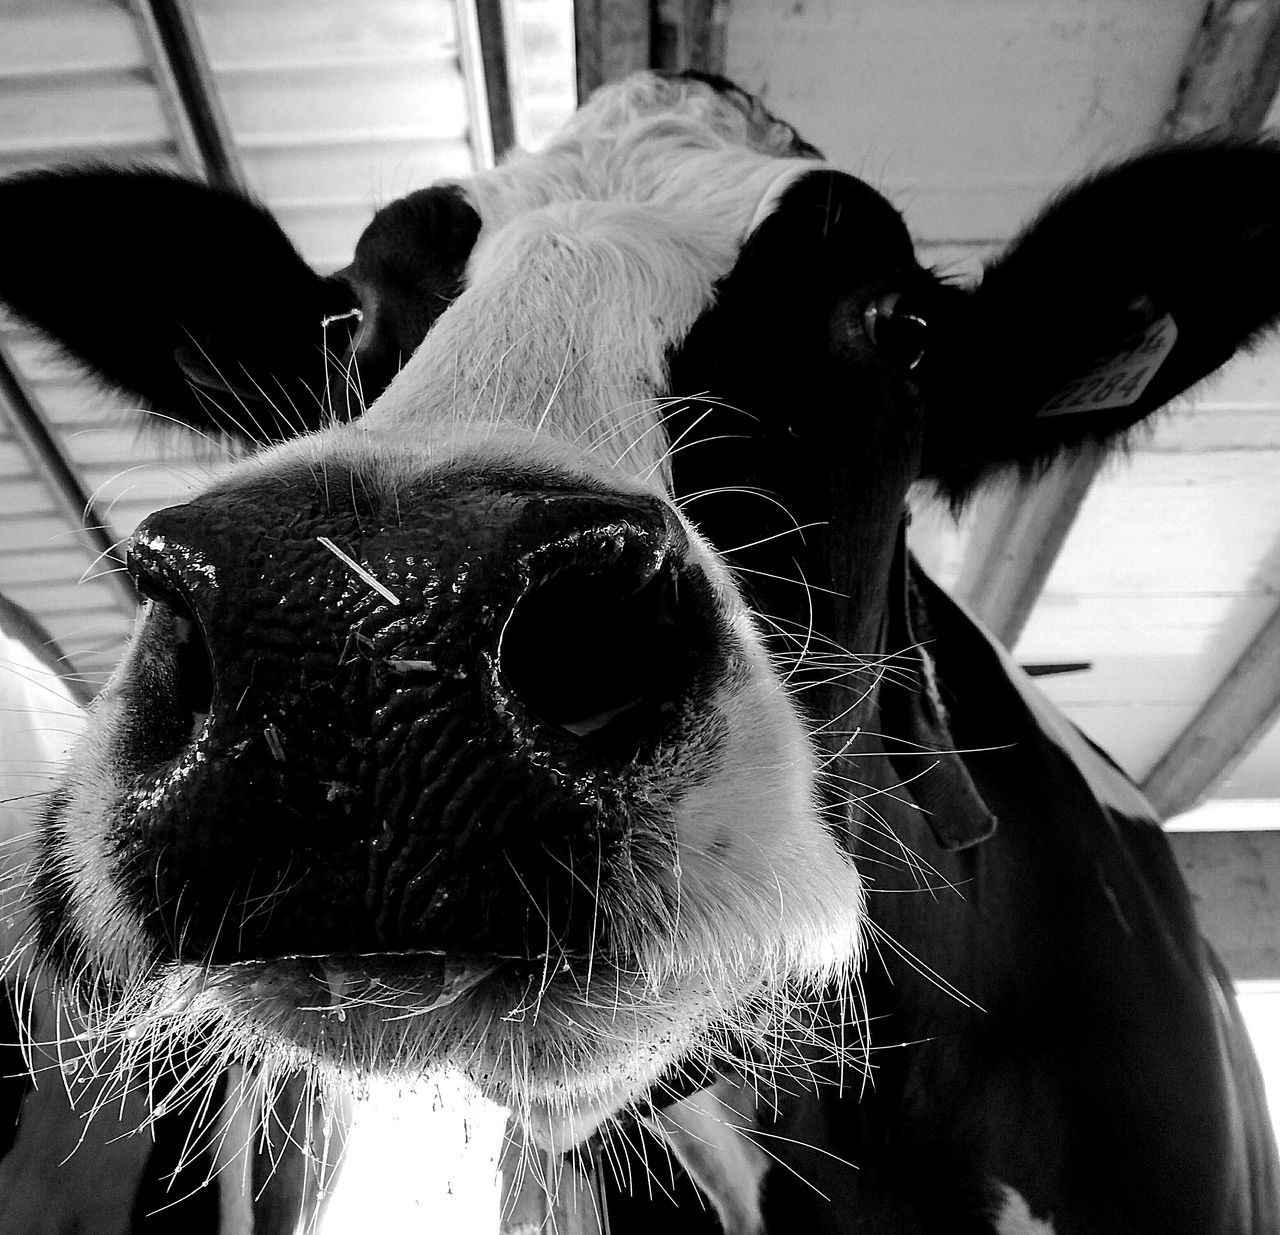 Domestic Animals Farm Life Cows🐮 Cow Face Cow Farm Coworking Mammal Animal Themes Milk Milk Production One Animal Close-up Indoors  Day No People